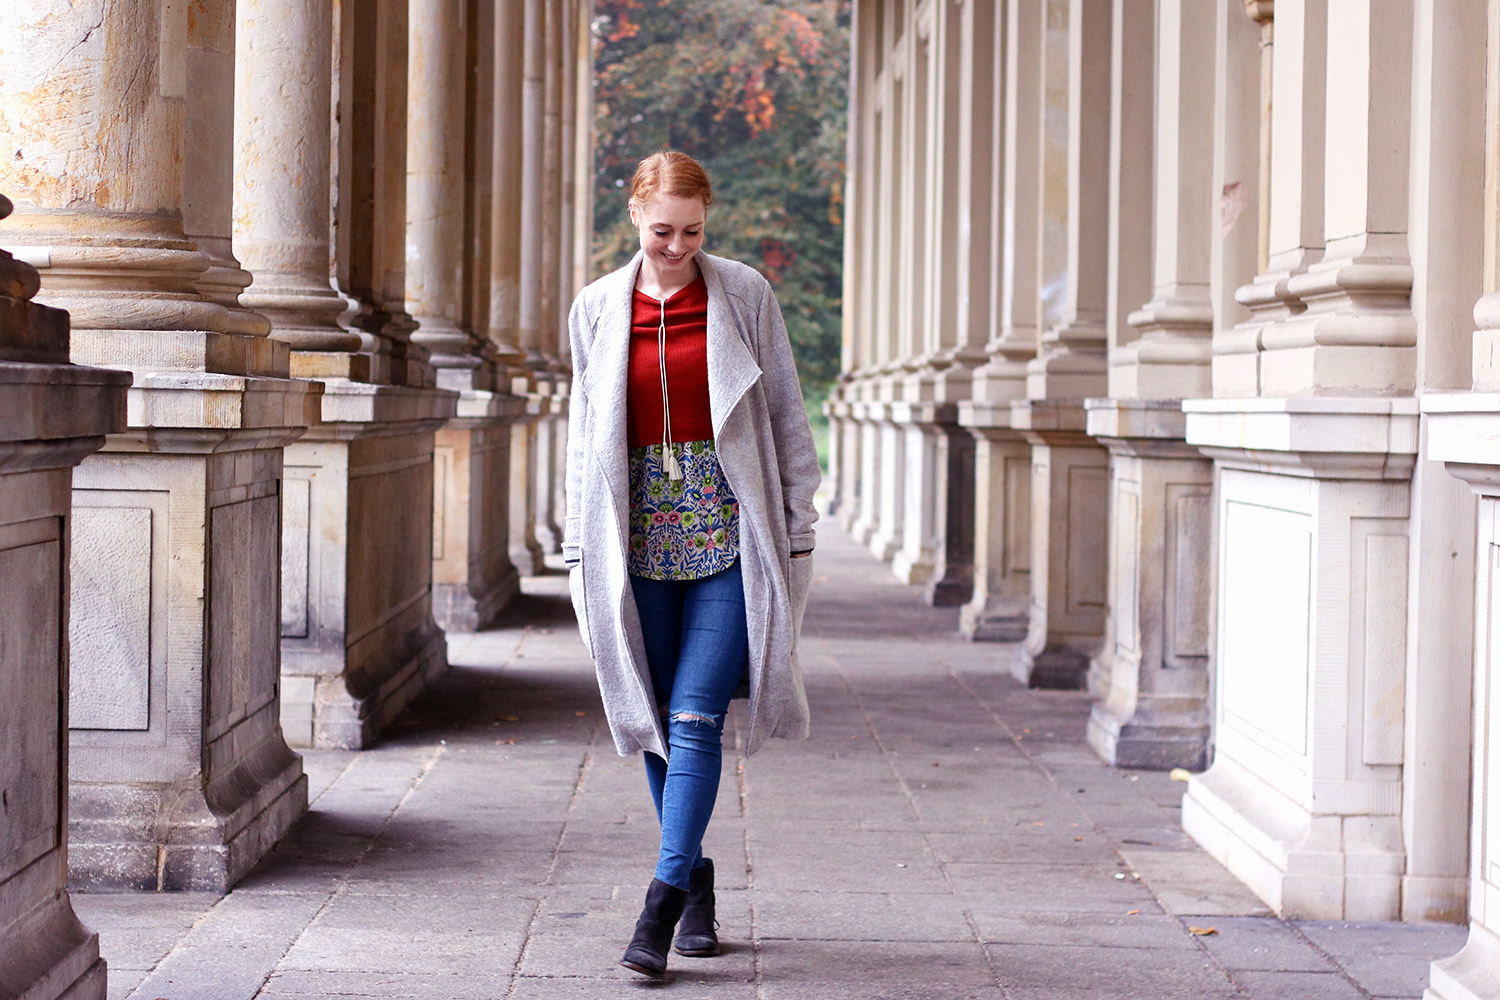 Top 5 Herbst Must Dos, Herbst Tipps, Herbst Trends, Mode, Mode Tipps, Styling Tipps, Herbst Outfit, Modeblog, Berlin, Influencer, Advance Your Style